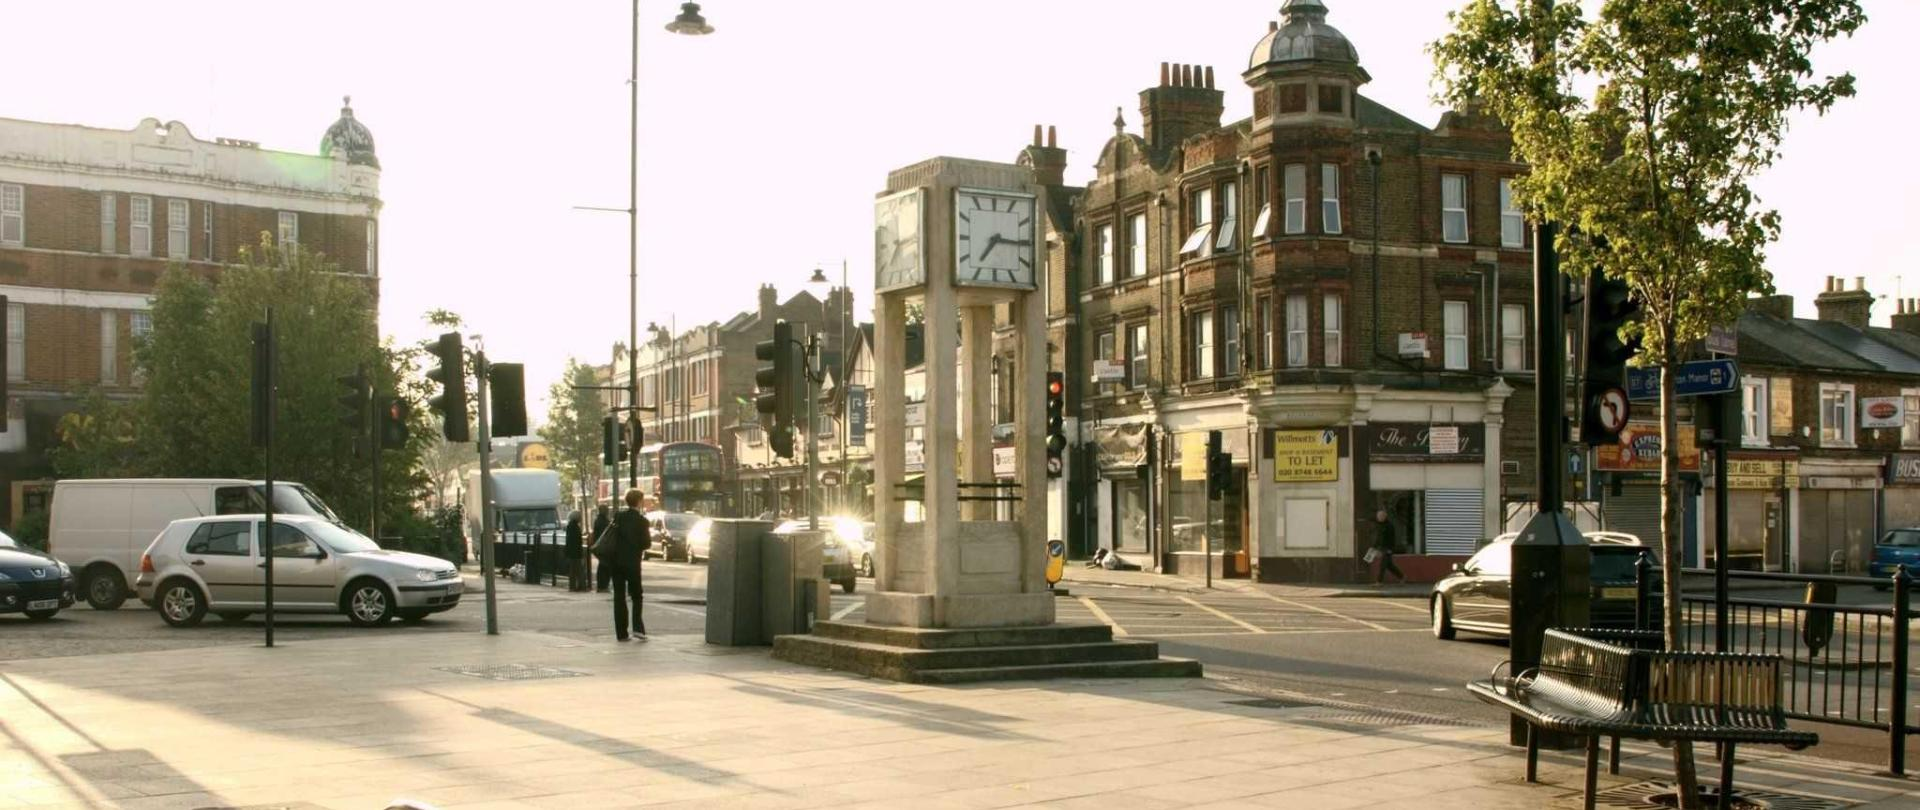 _hanwell-ealing-clock-tower.jpg